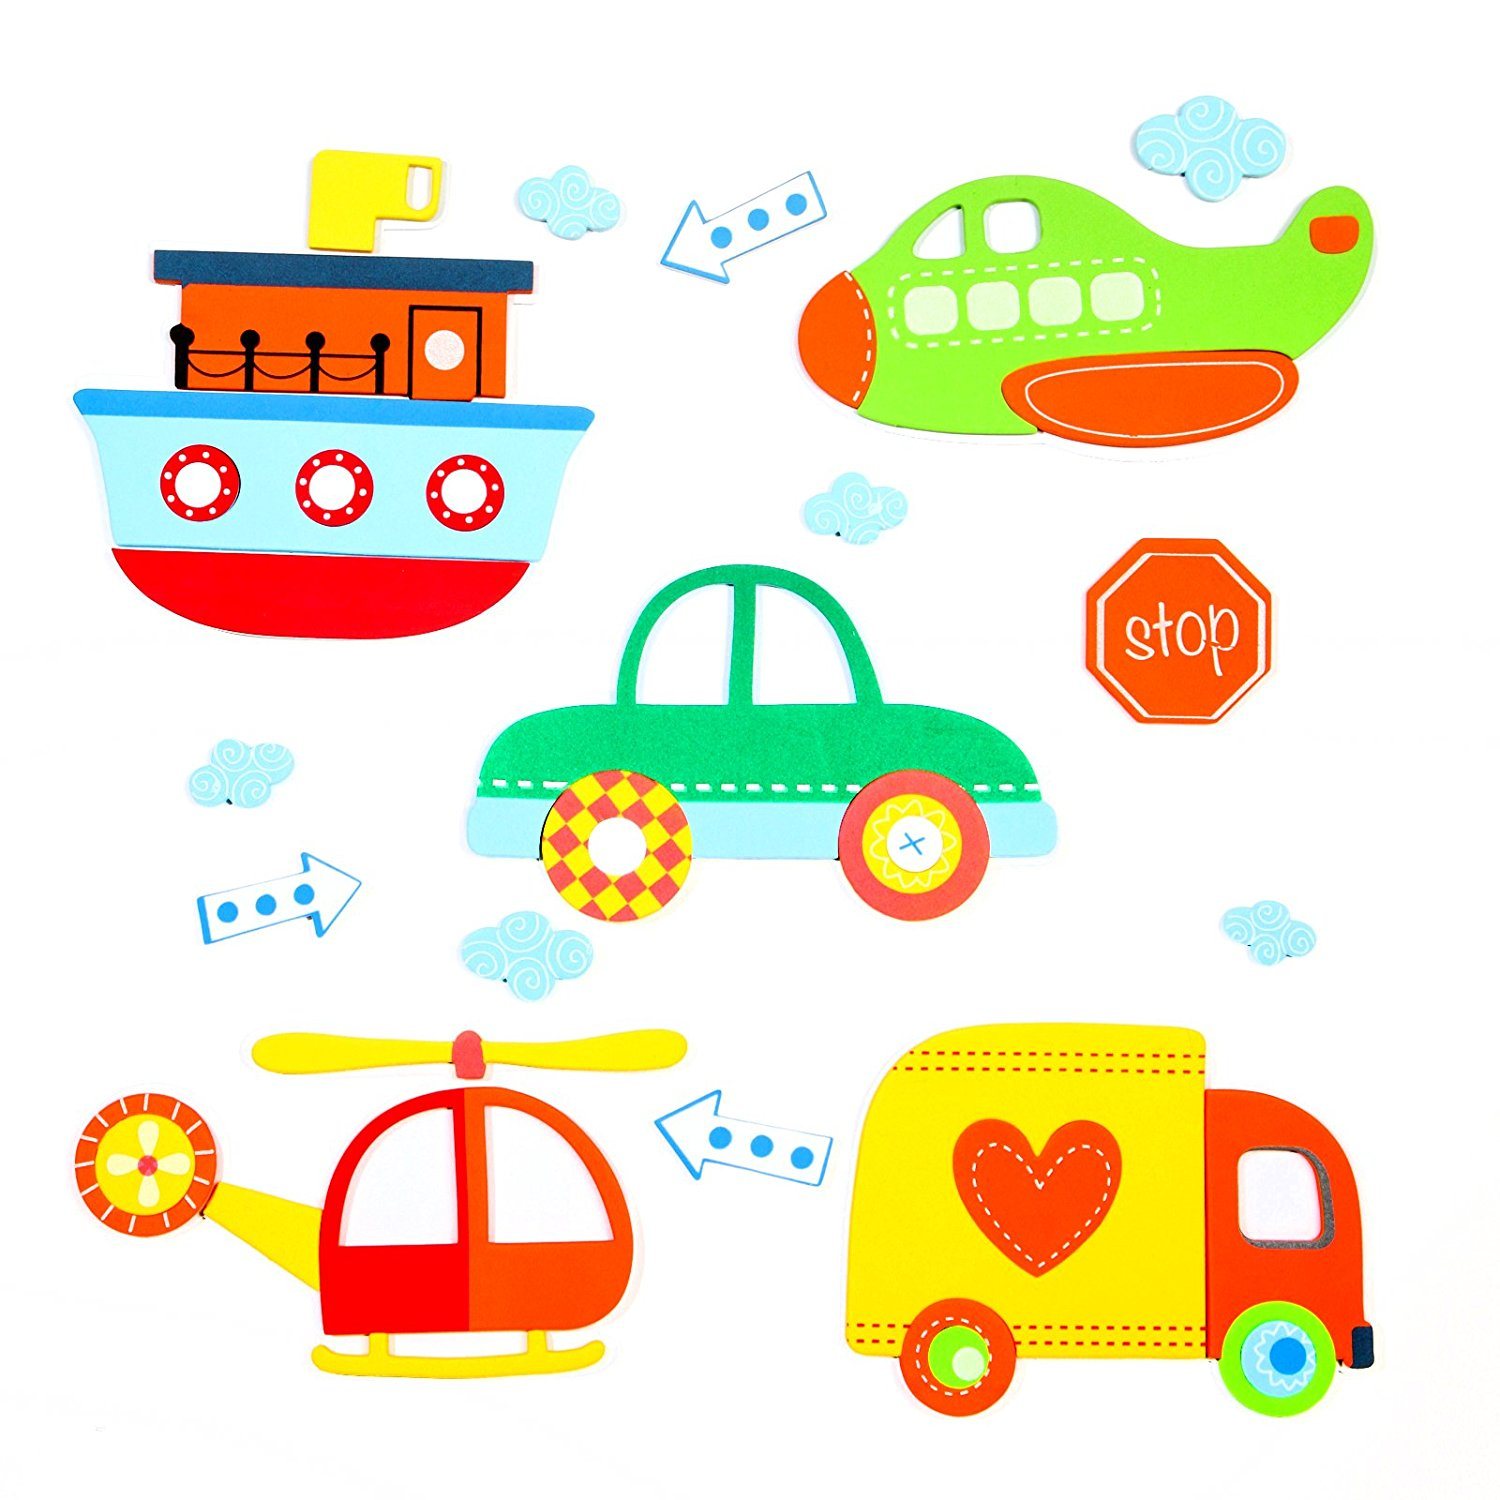 15 Premium 3D Wall Decals - Vehicles - Eco-Friendly - Reusable - Long Lasting - Easy Stick - Colorful - Foam Stickers - Kids Room Decals - Educational Sticker Decals - Nursery Baby Decor